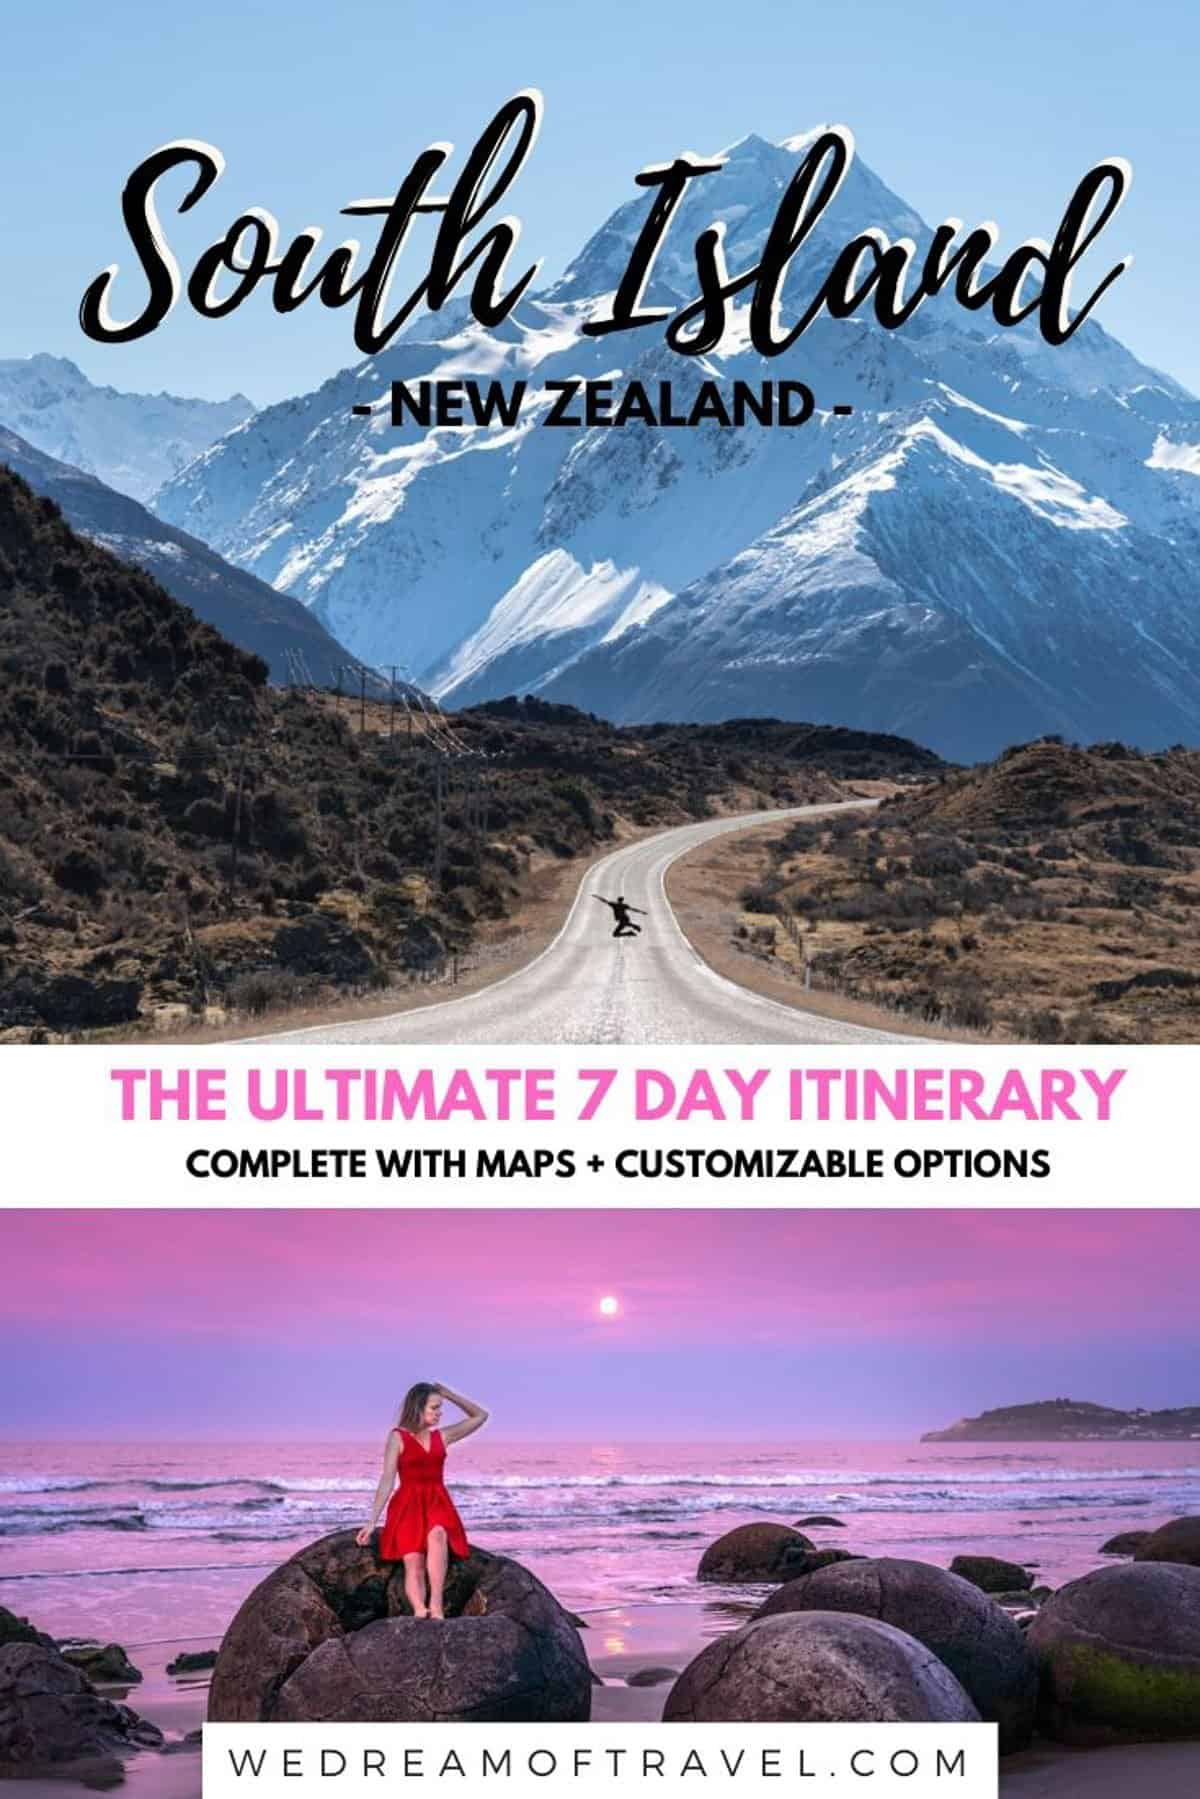 Looking to discover what to do and where to go with a week on New Zealand's South Island?  This is the ULTIMATE South Island 7 Day Itinerary. PLUS alternative options and all you need to know to help customise and plan YOUR perfect NZ South Island itinerary.  And maps of course! #newzealand #southisland #itinerary #roadtripguide